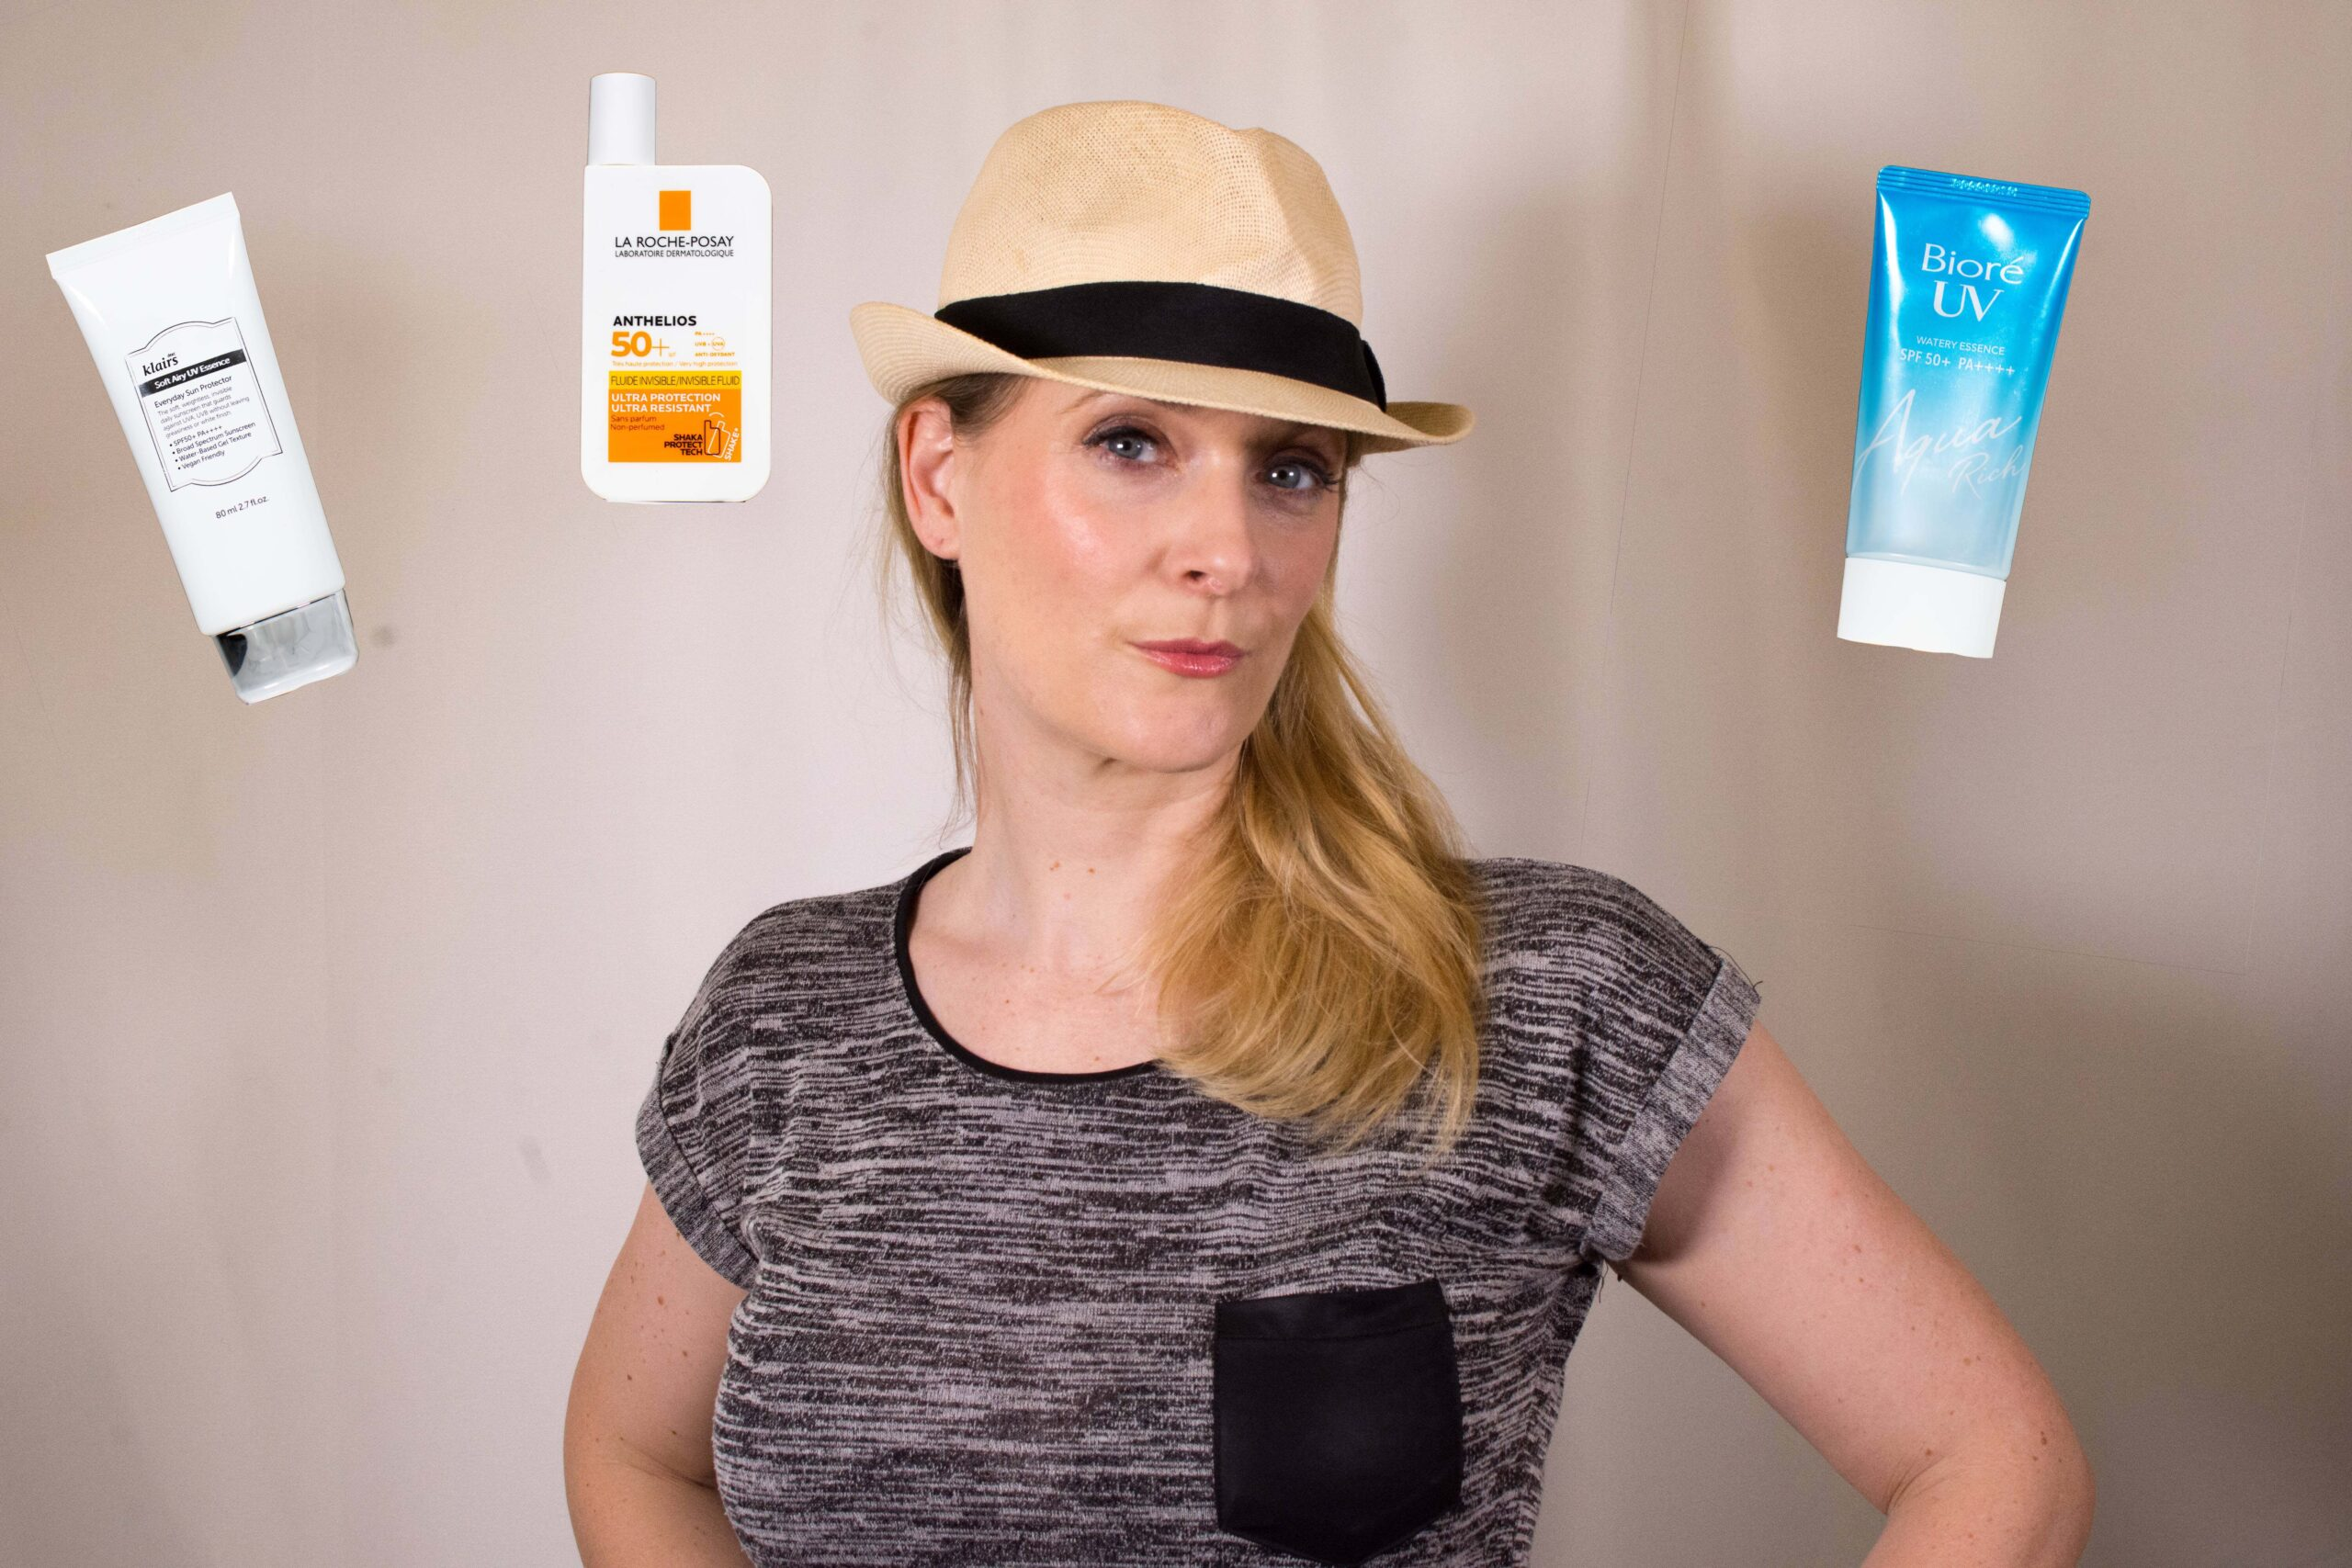 The best three everyday sunscreens for your face